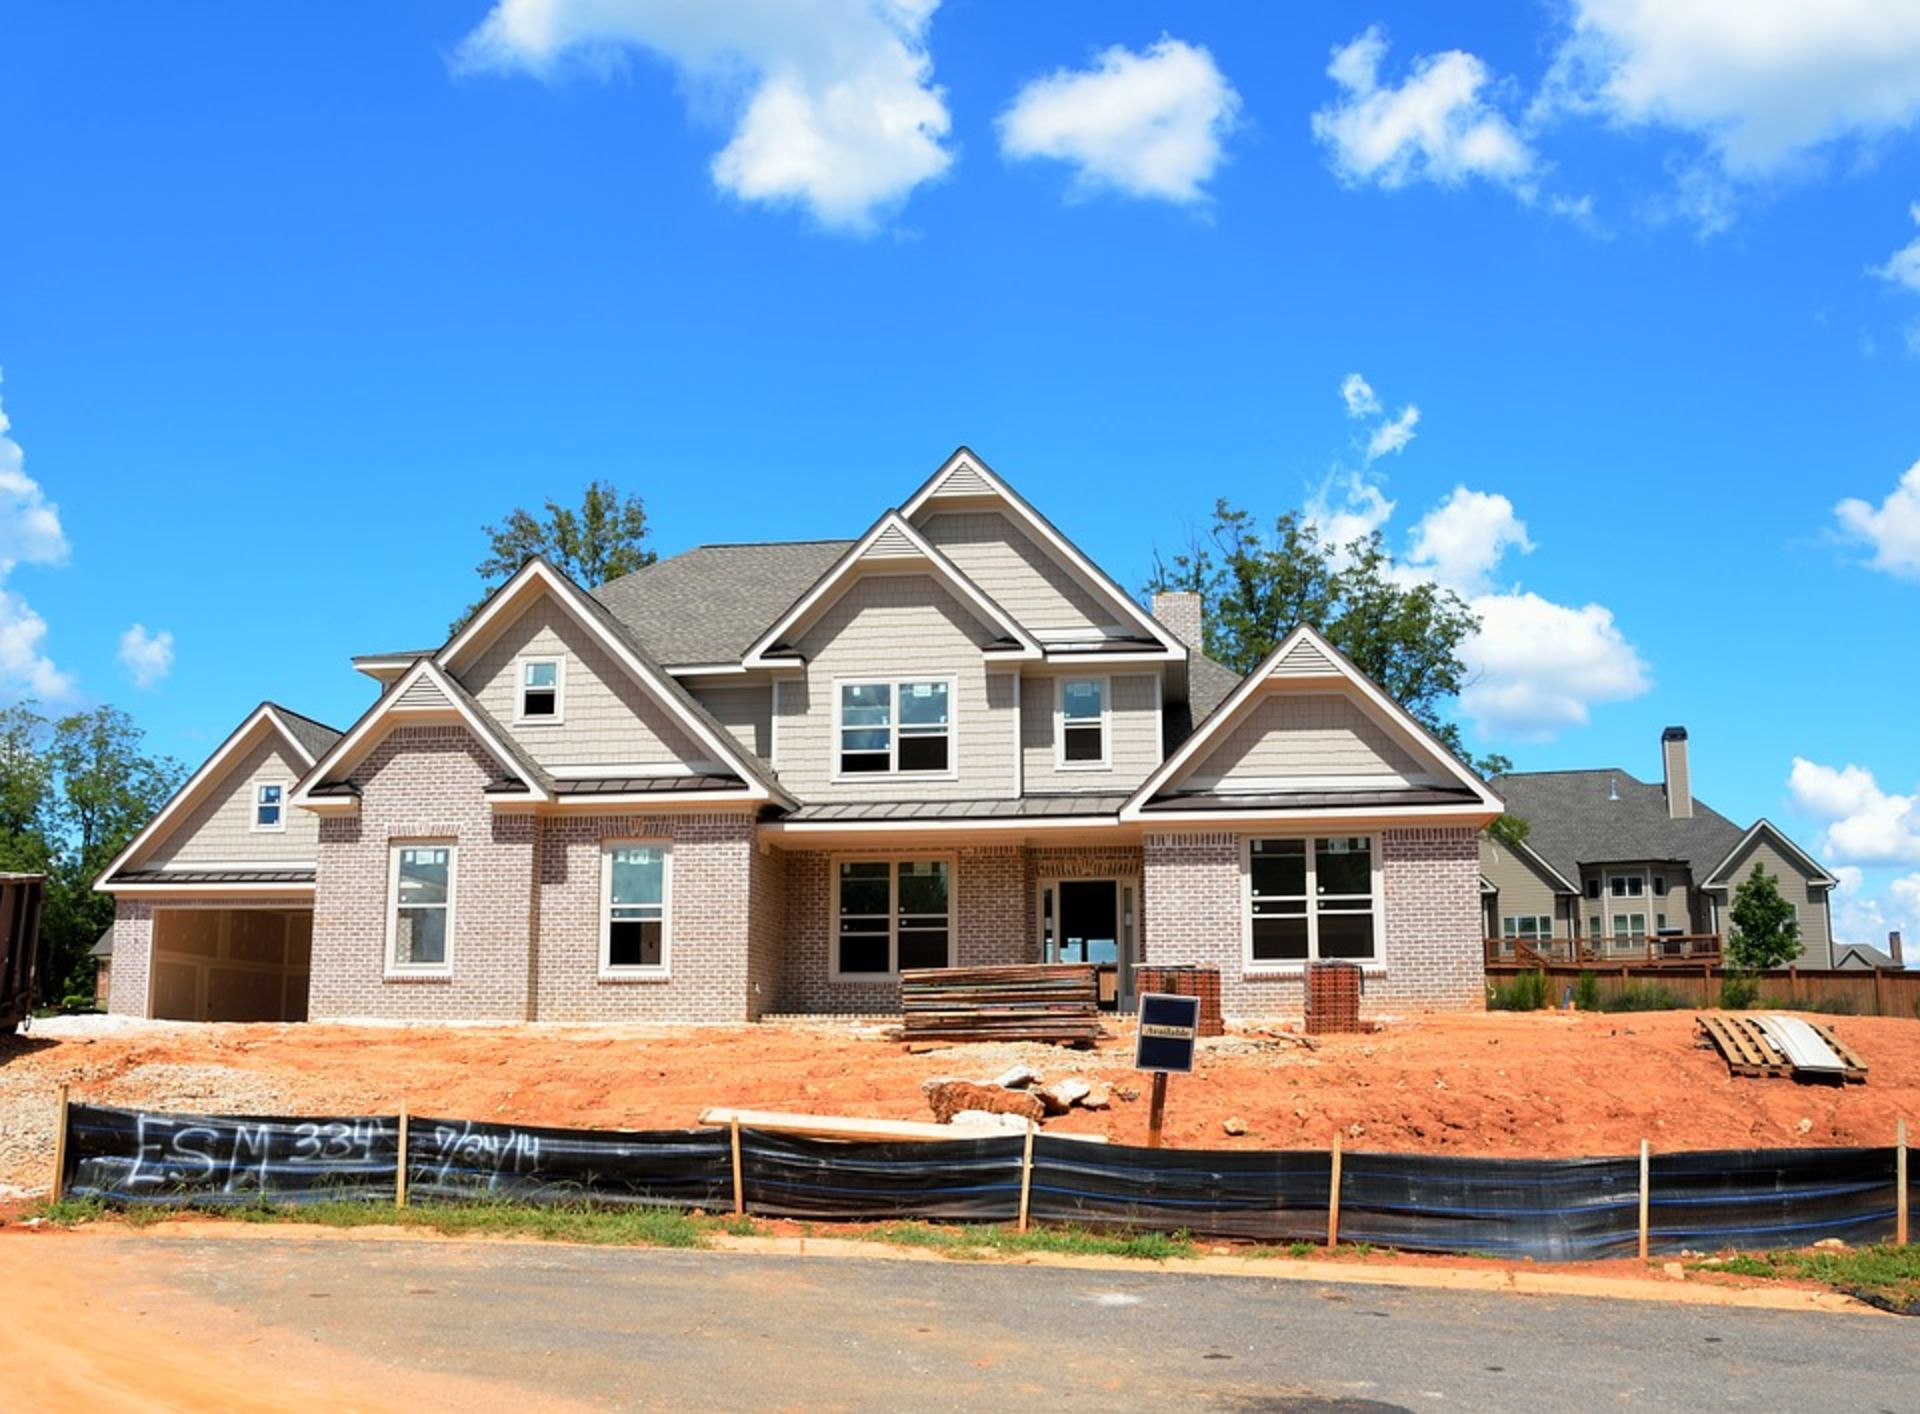 Why You Need a Buyer's Agent When Purchasing New Construction